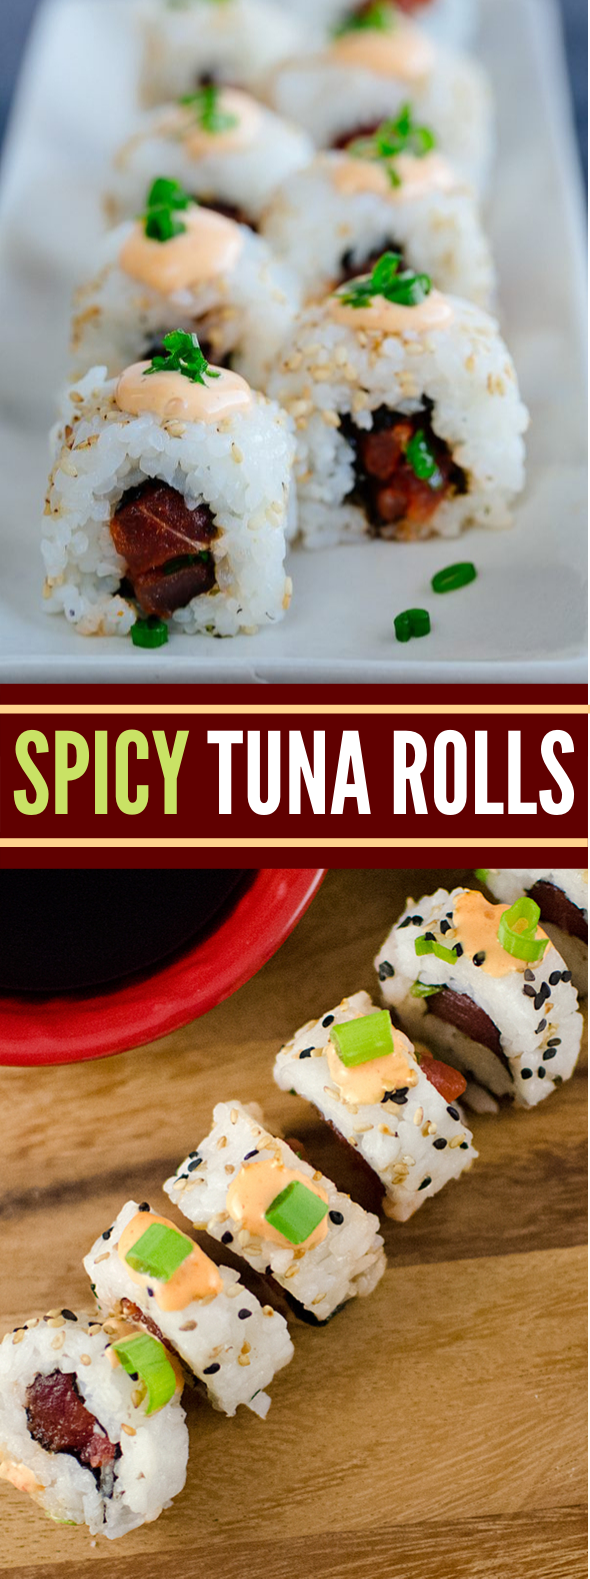 HOW TO MAKE SPICY TUNA ROLLS #dinner #sushi